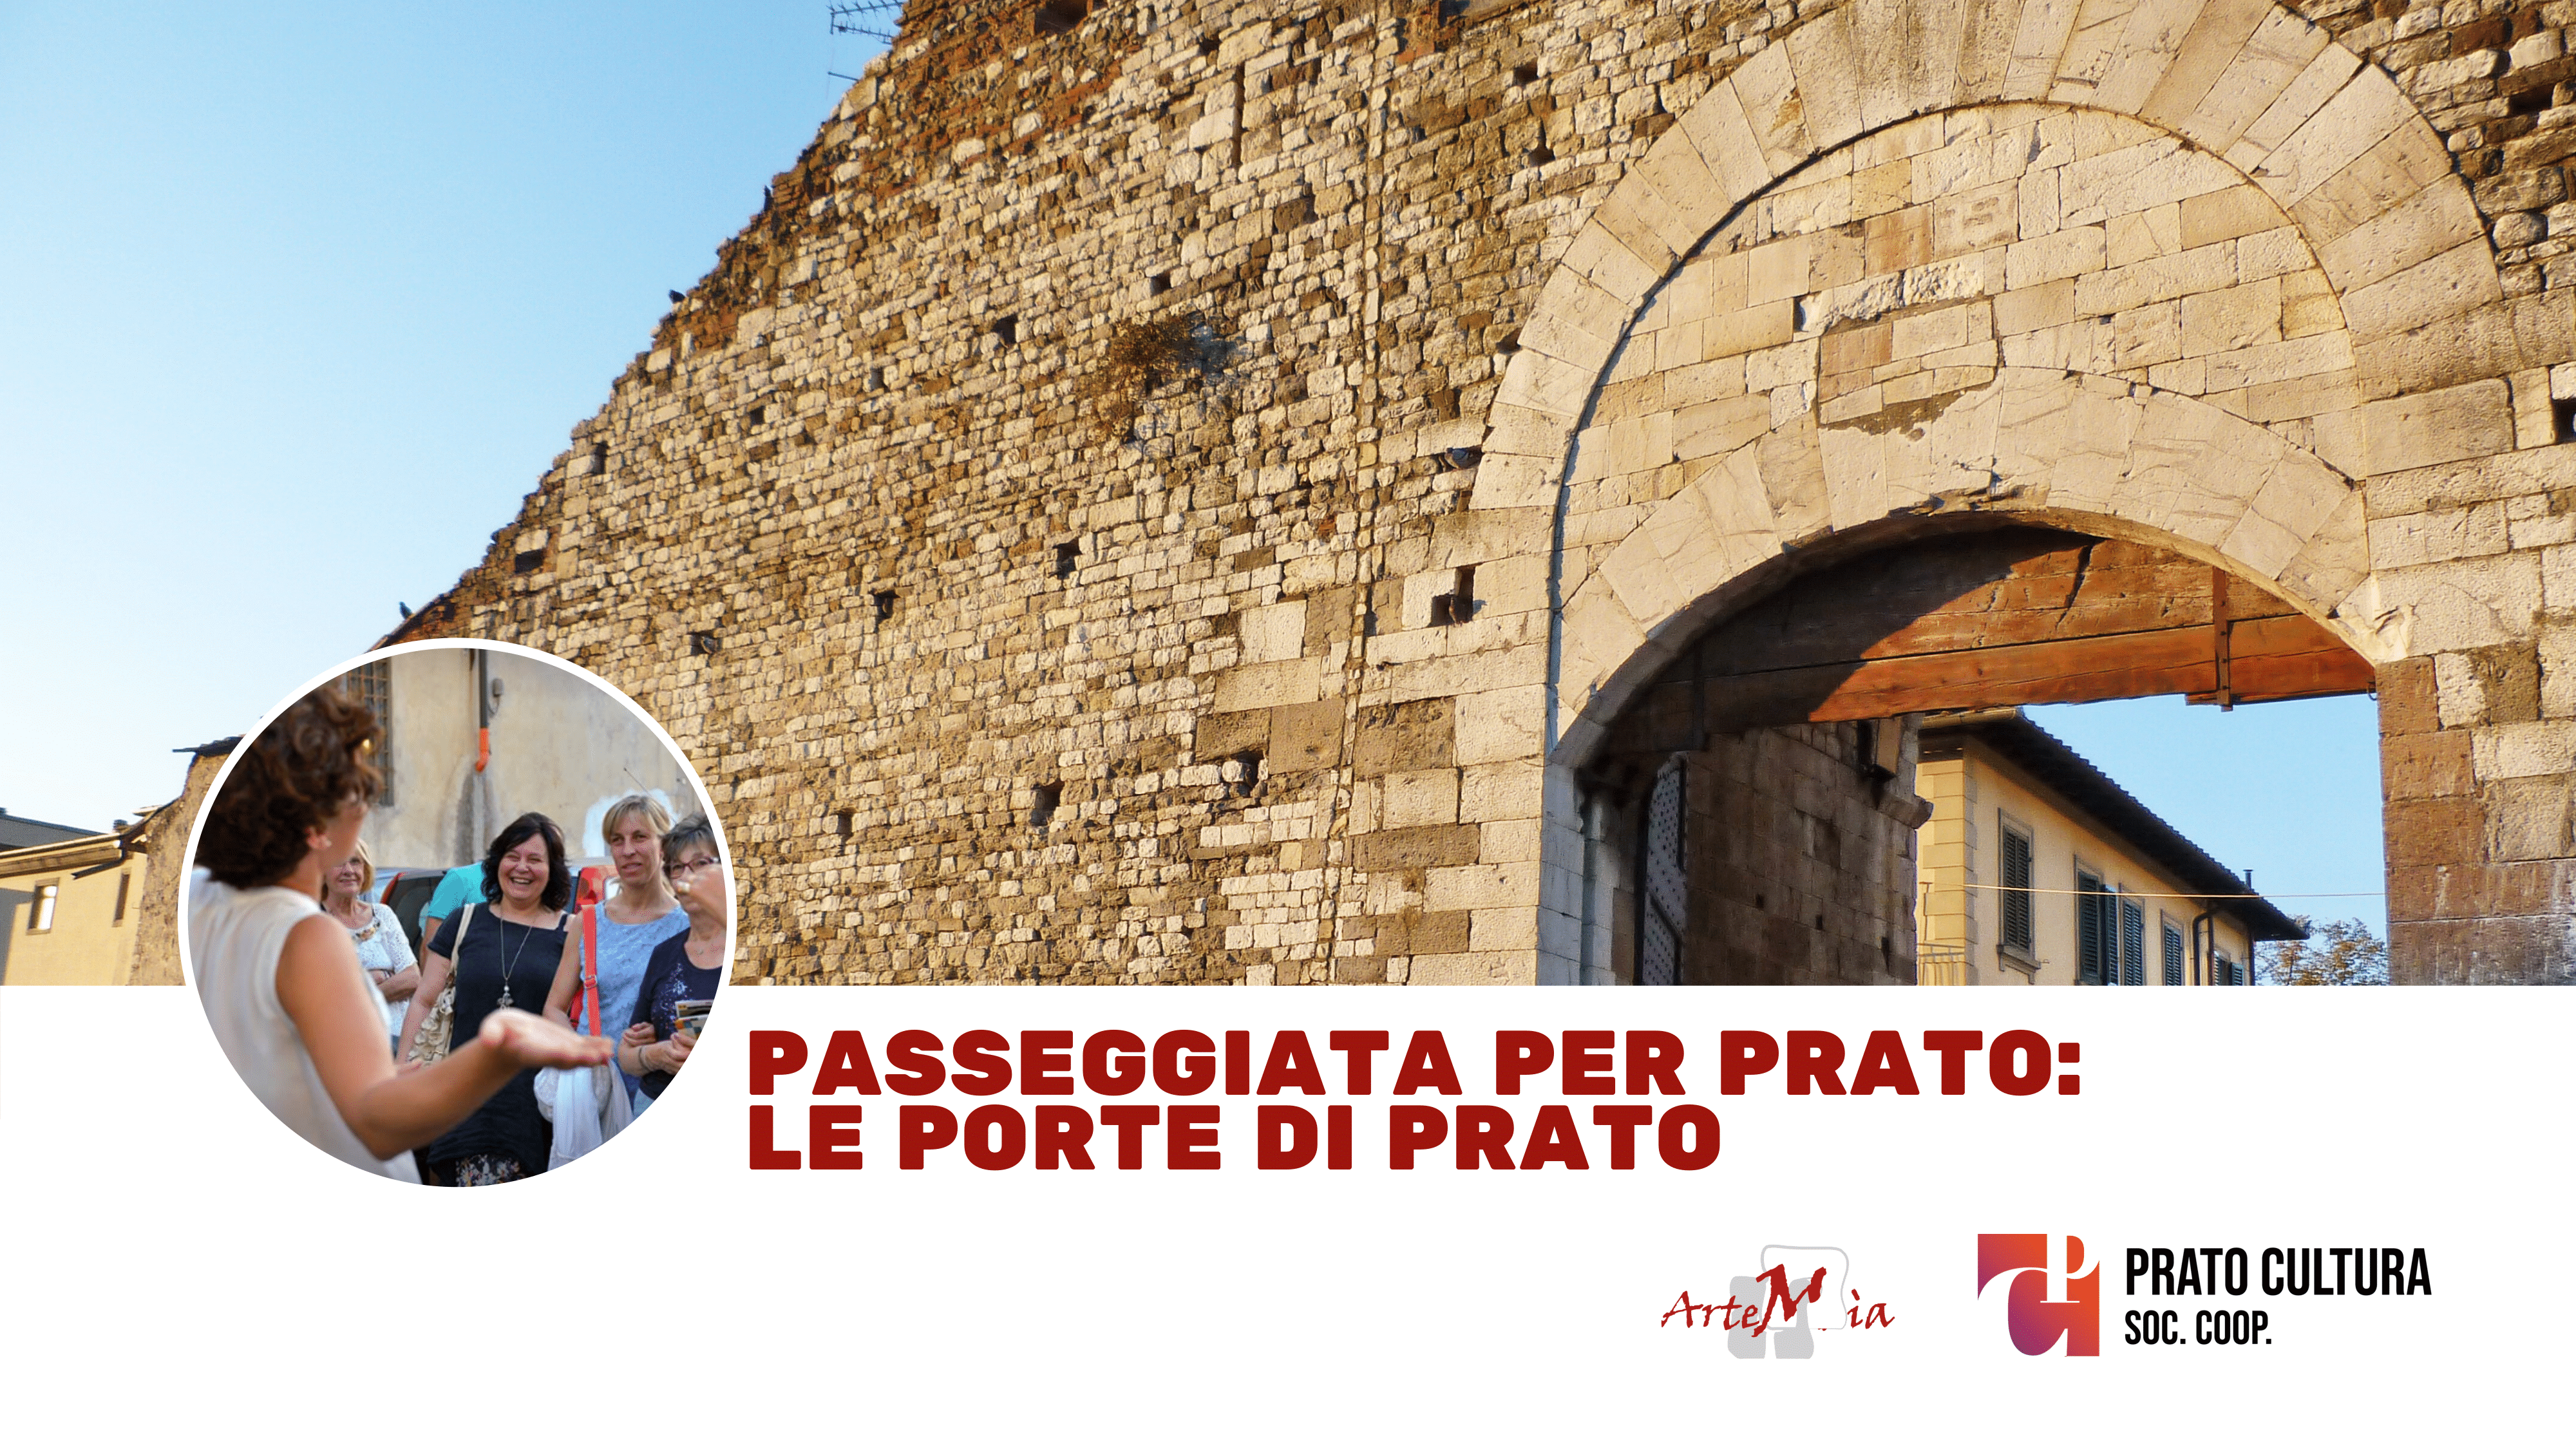 Visita: Le porte di Prato